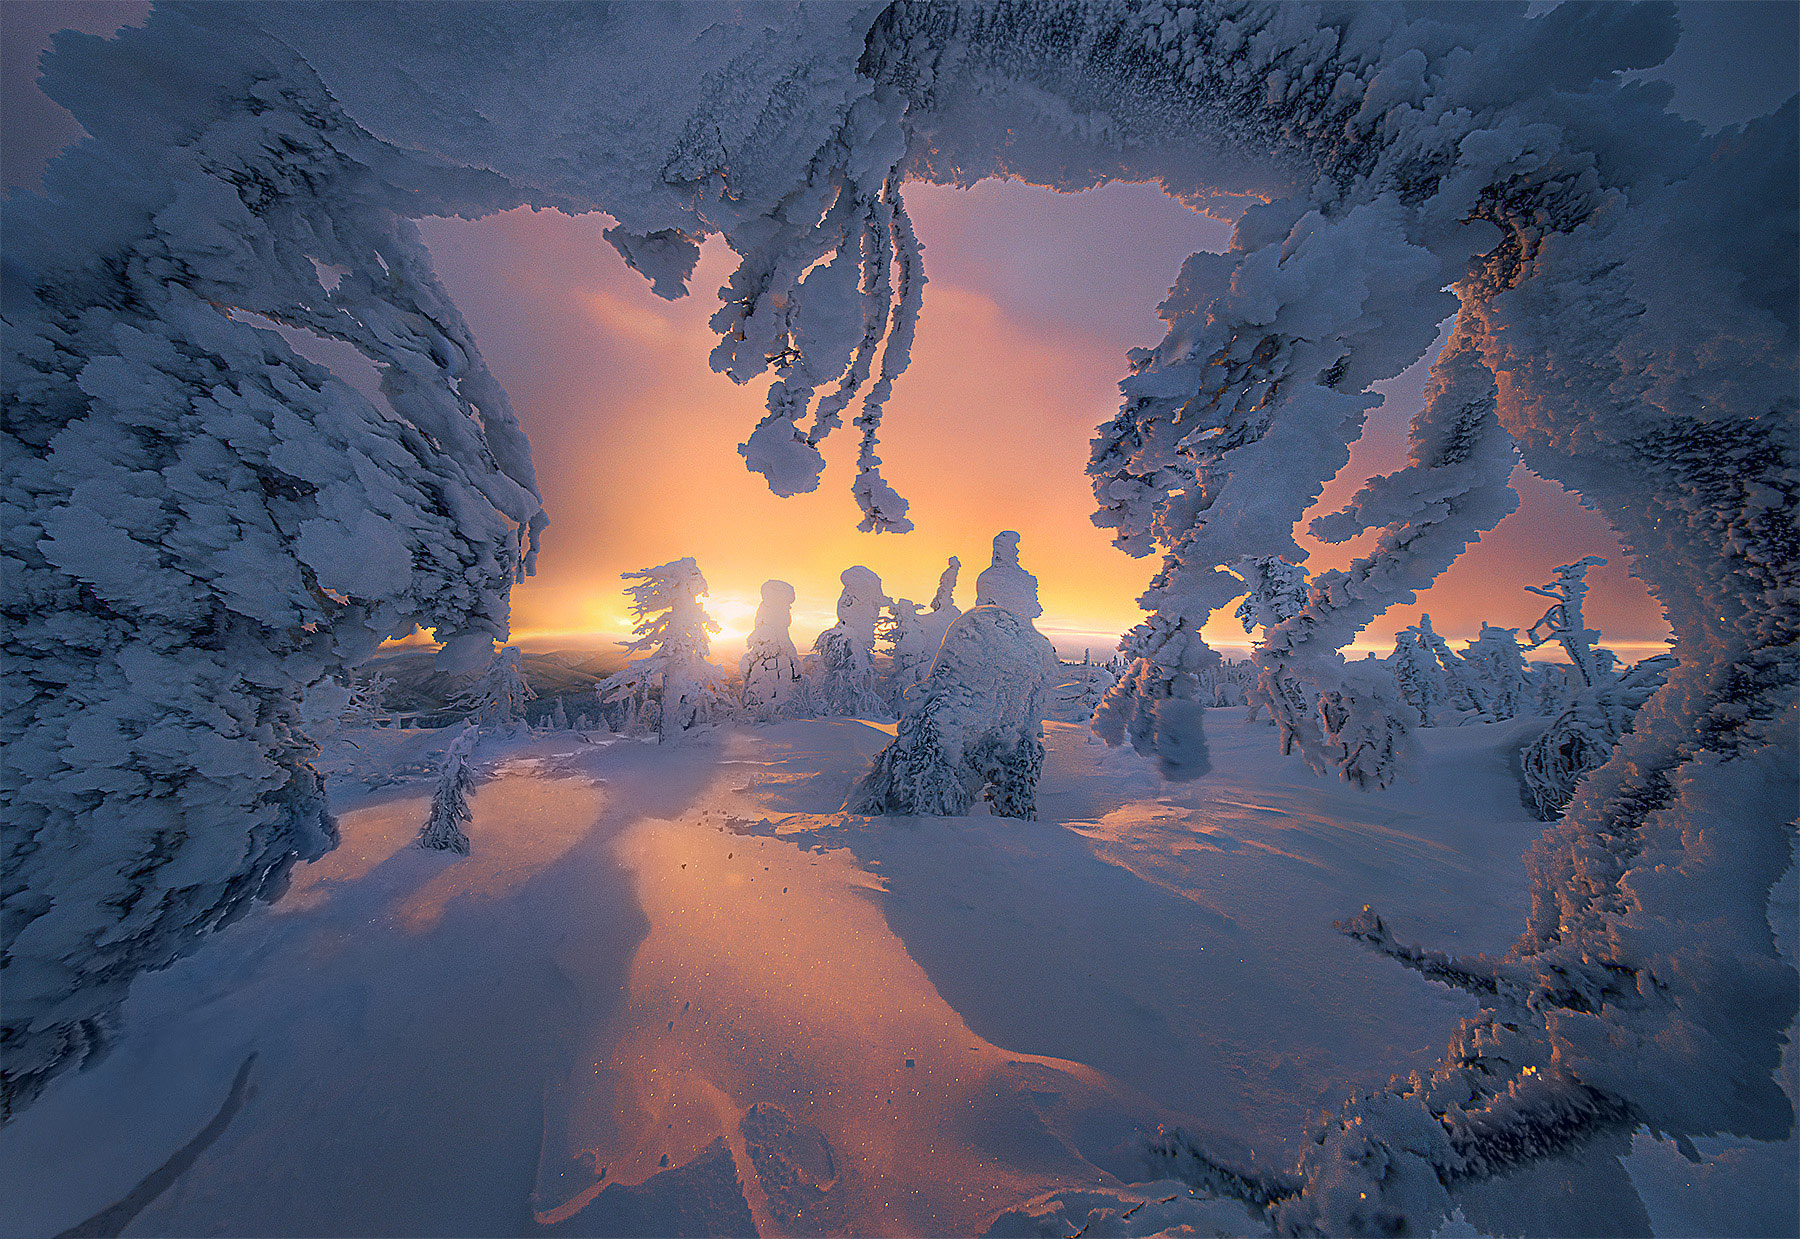 Frozen branches frame a flaming sunset through snowy forest at 1pm in the Alaskan winter.